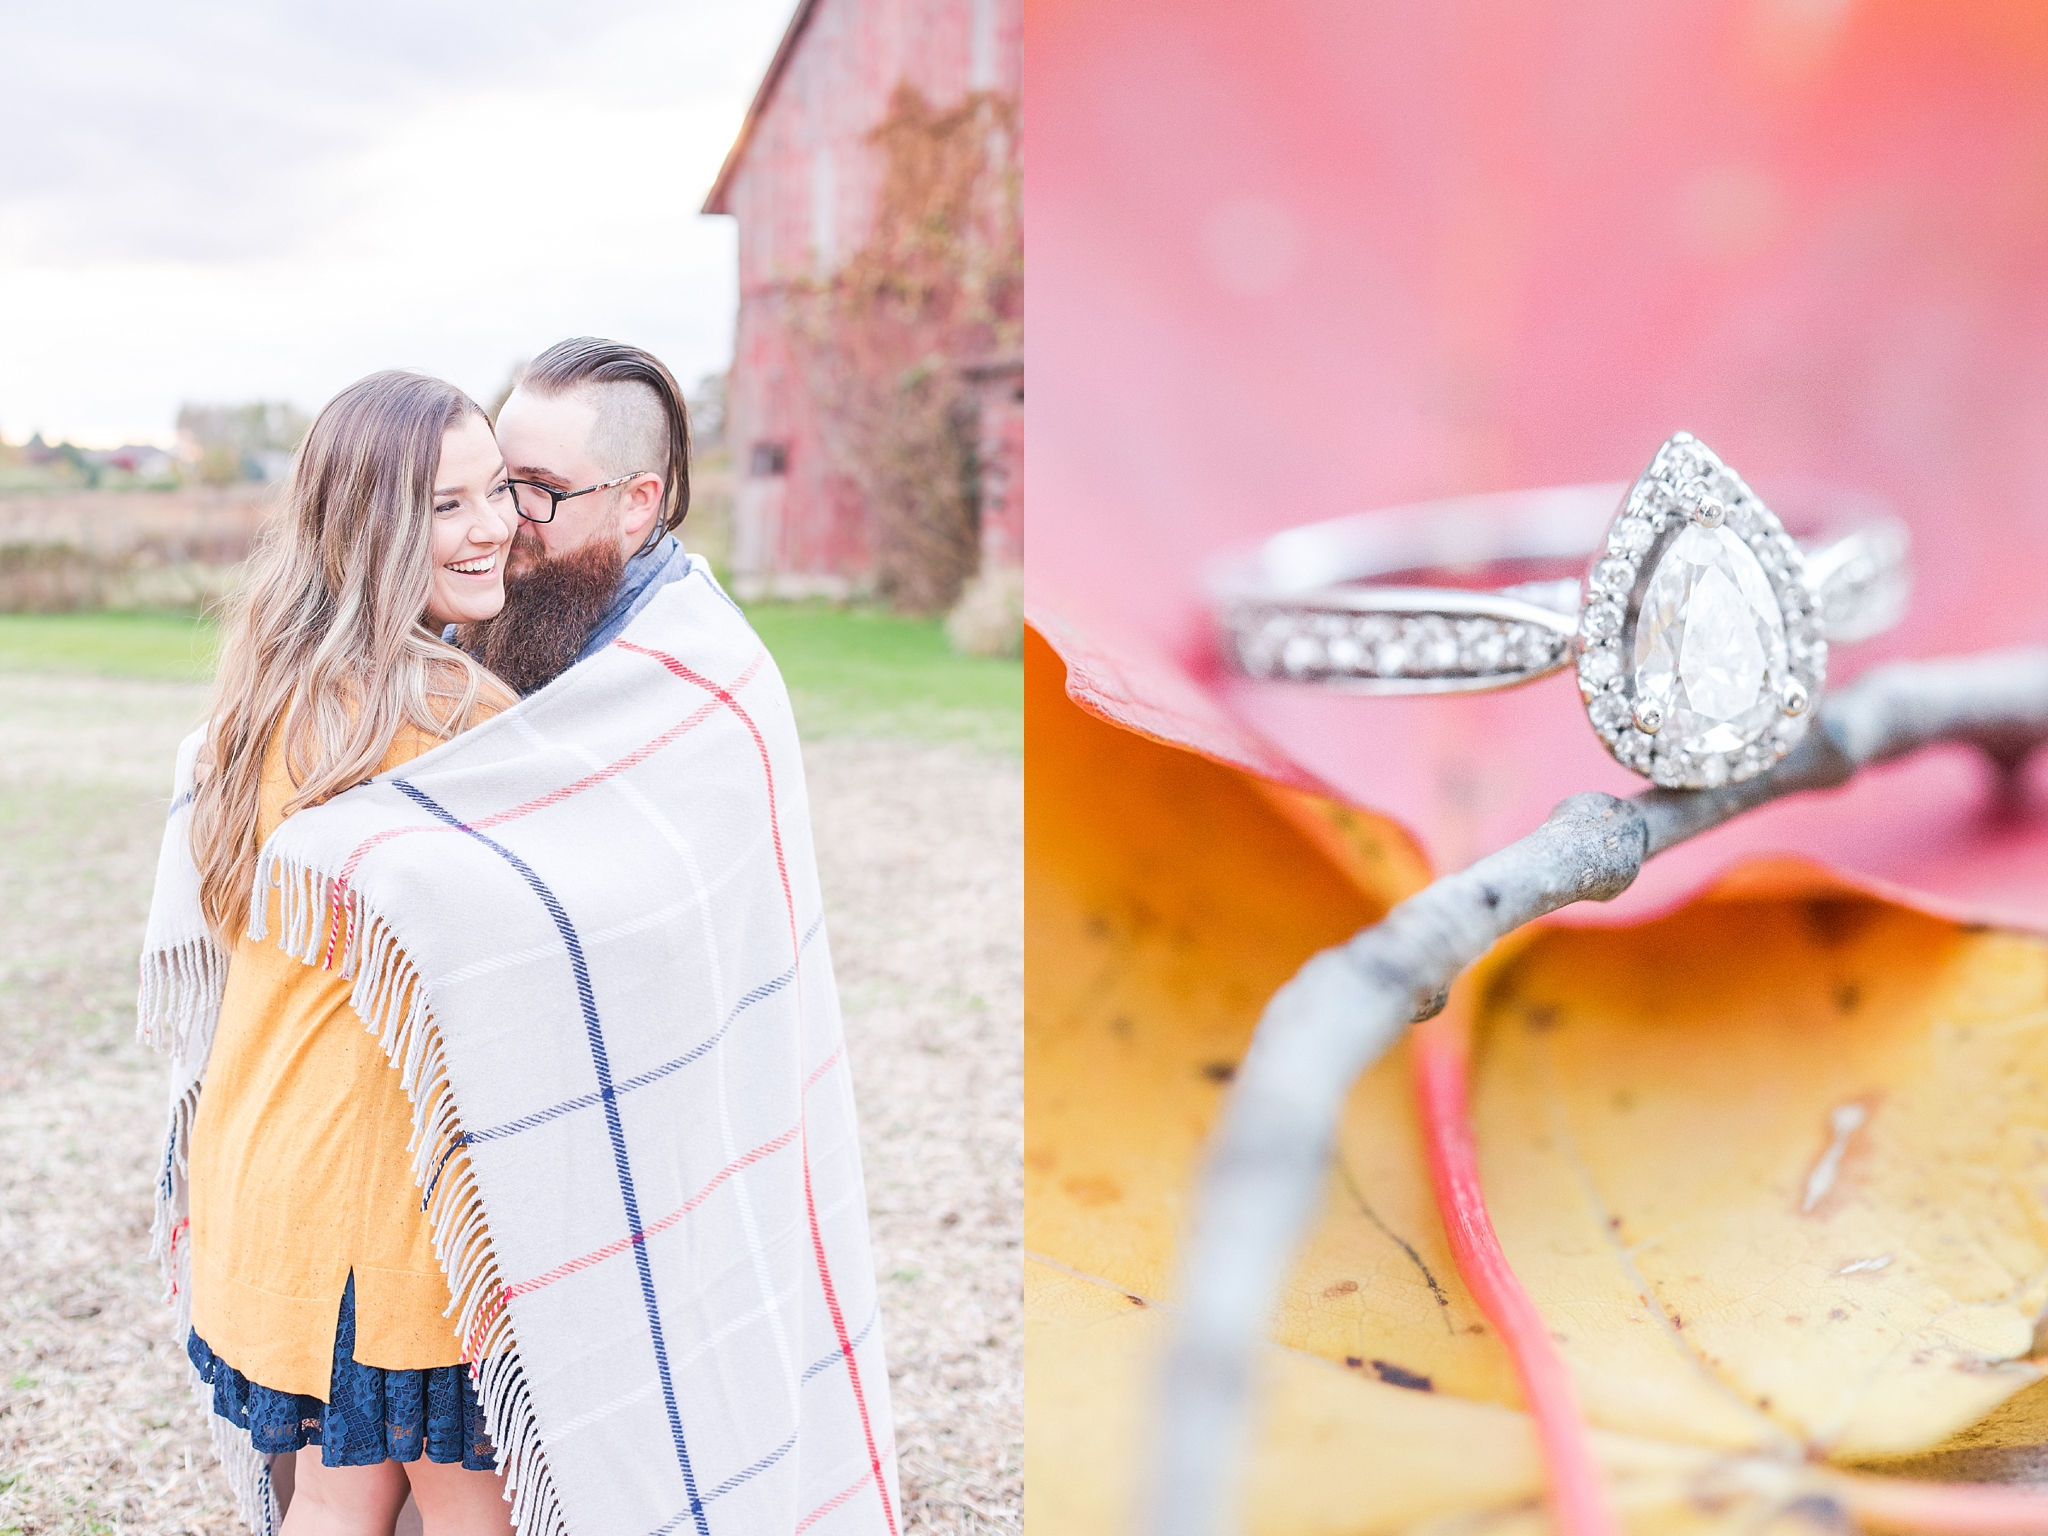 cozy-fall-engagement-photos-at-an-old-family-farm-in-monroe-michigan-by-courtney-carolyn-photography_0002.jpg